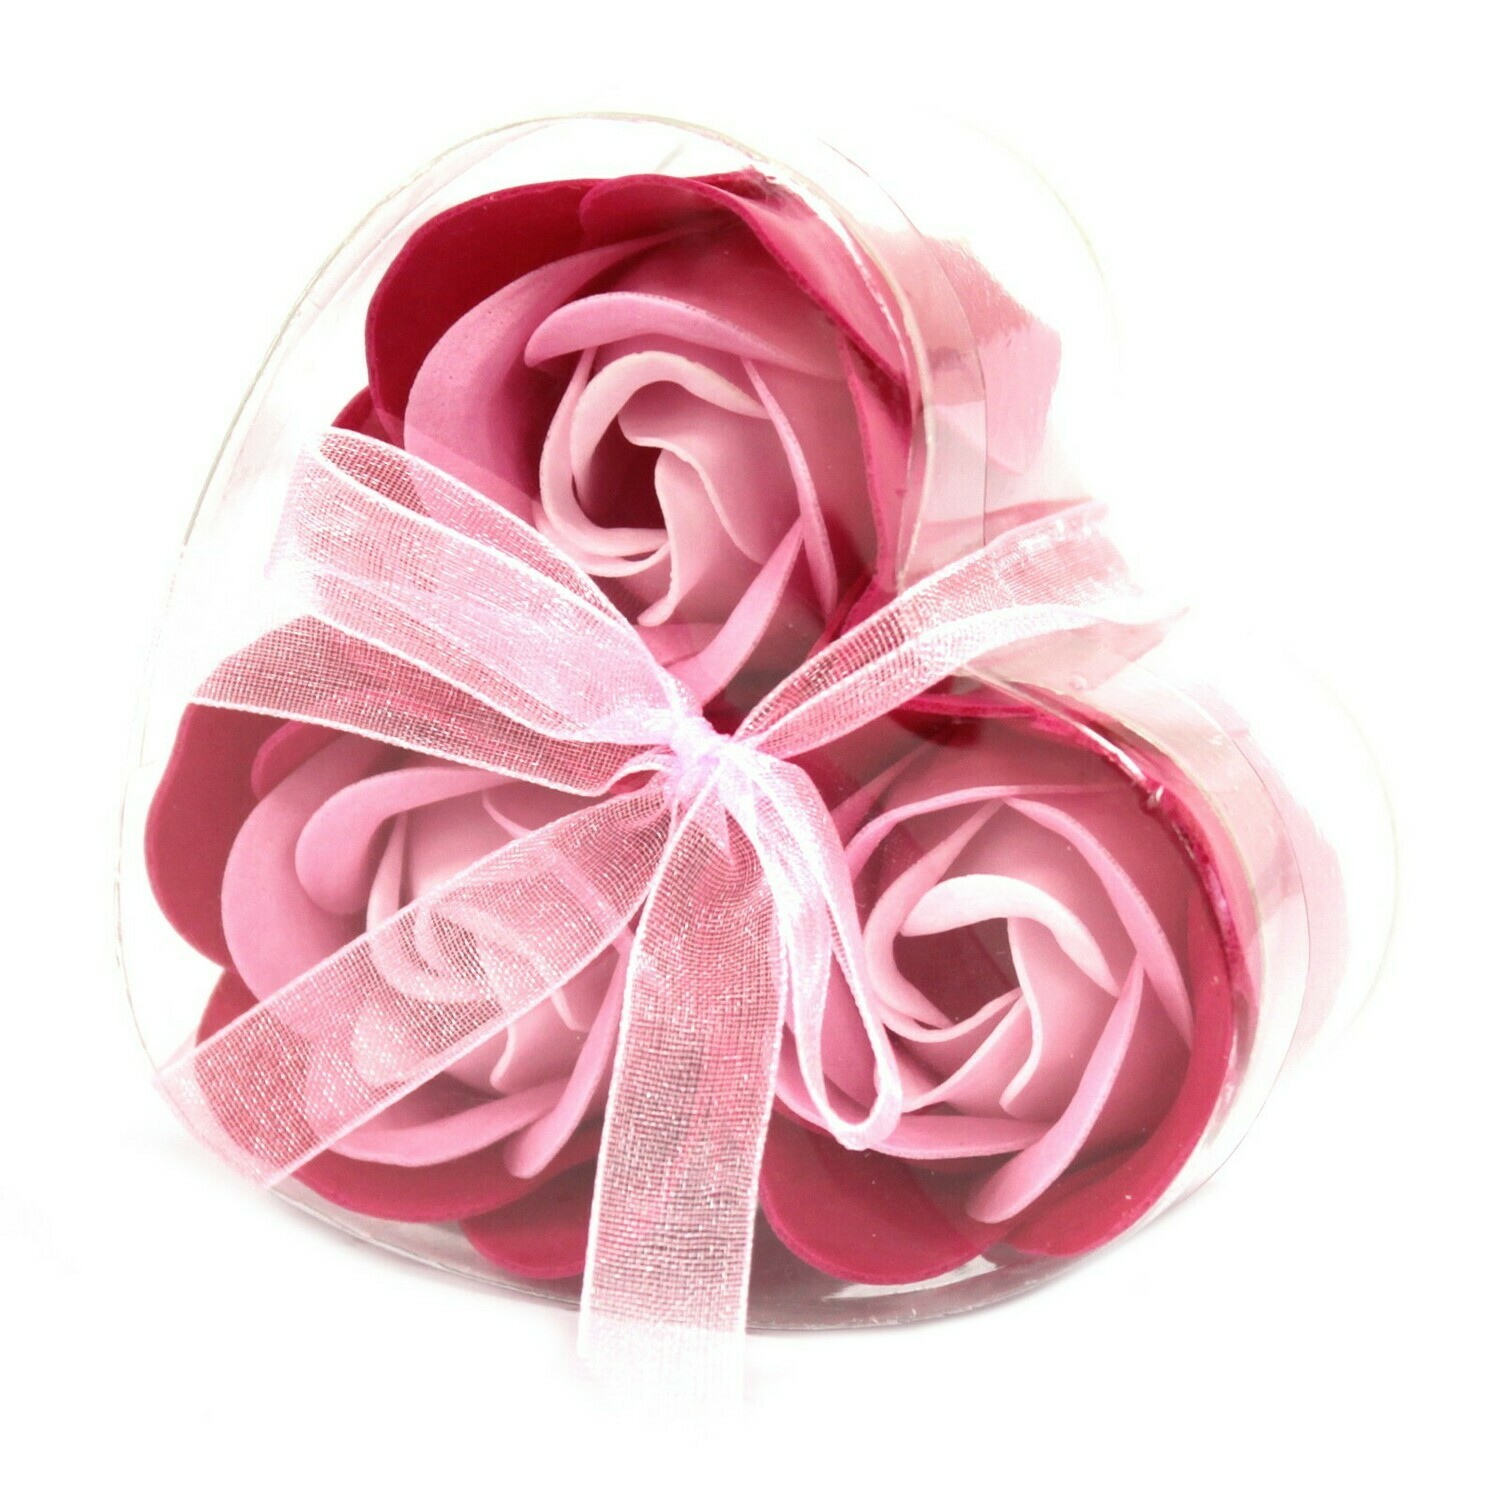 9 Luxury Soap Flower Roses - 3 Pink, 3 Red and 3 Peach. 